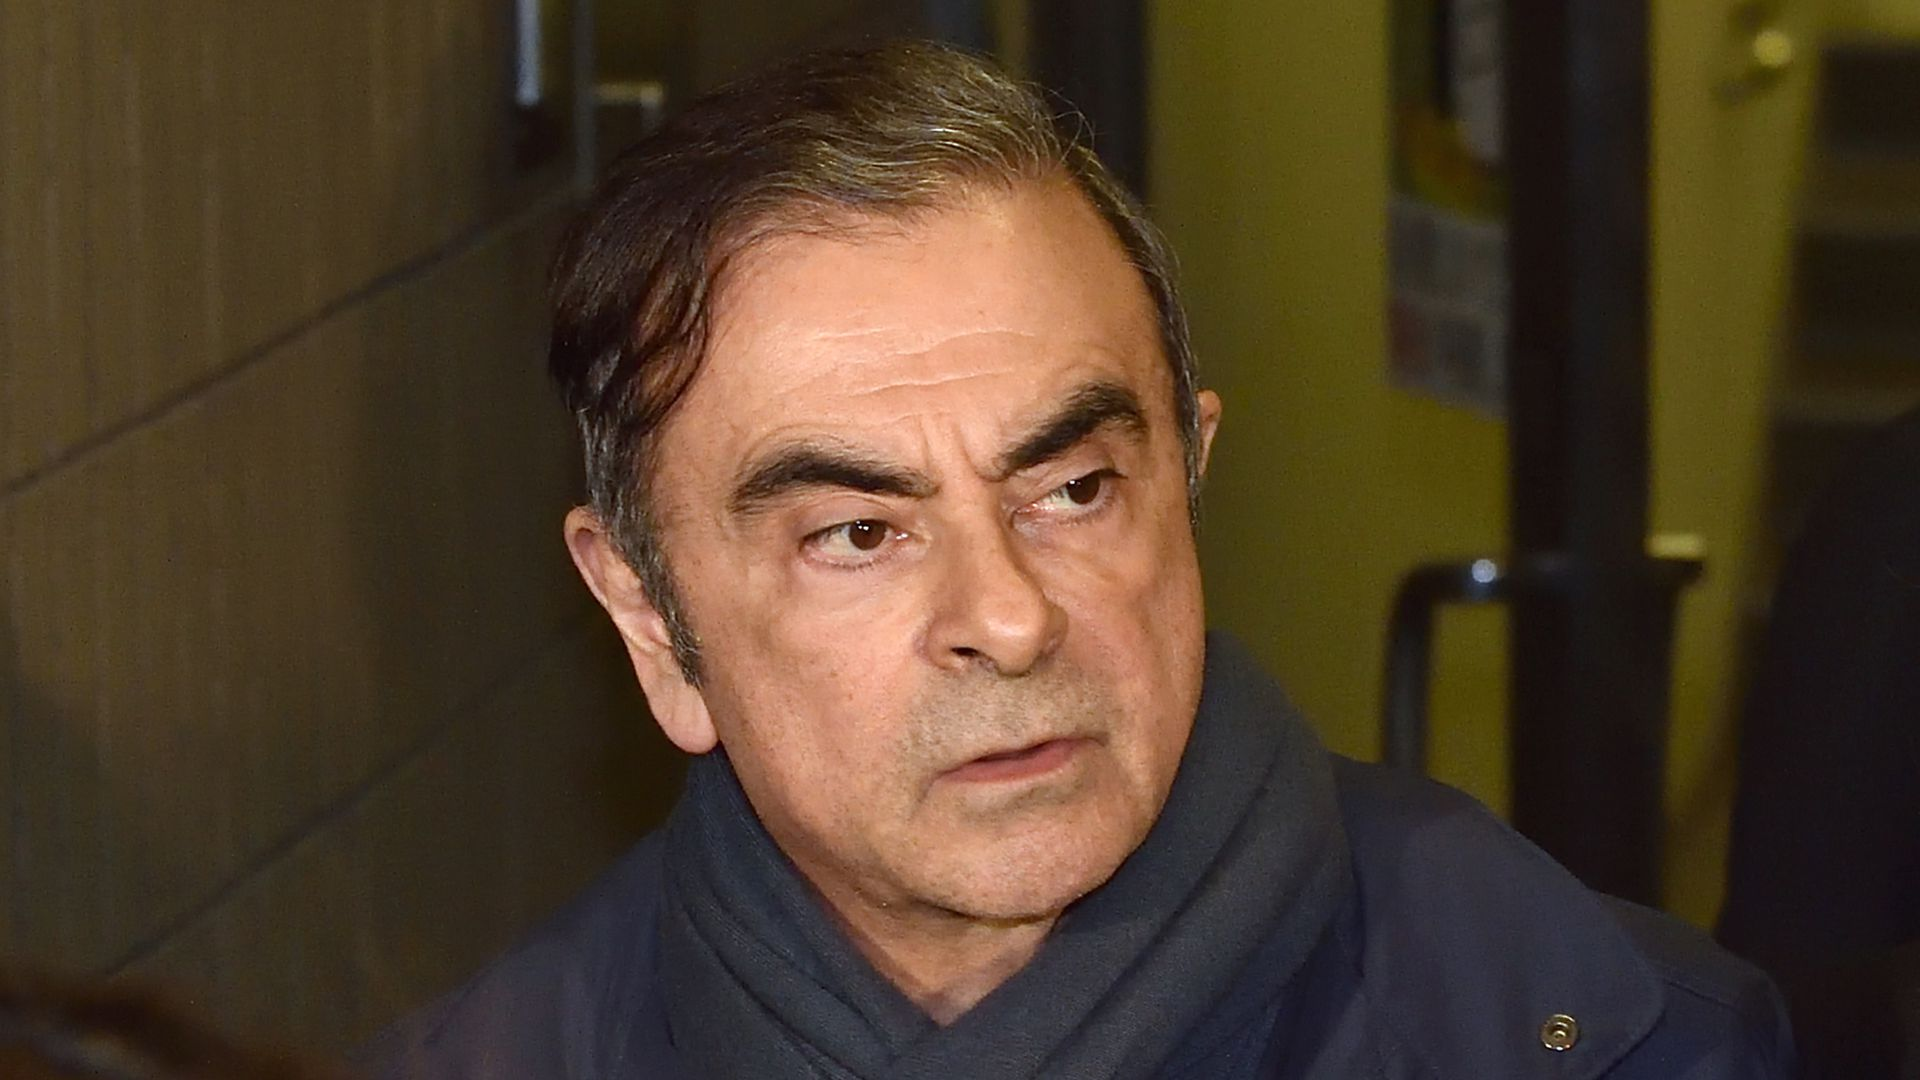 Nissan filed a criminal complaint against former Chairman Carlos Ghosn.